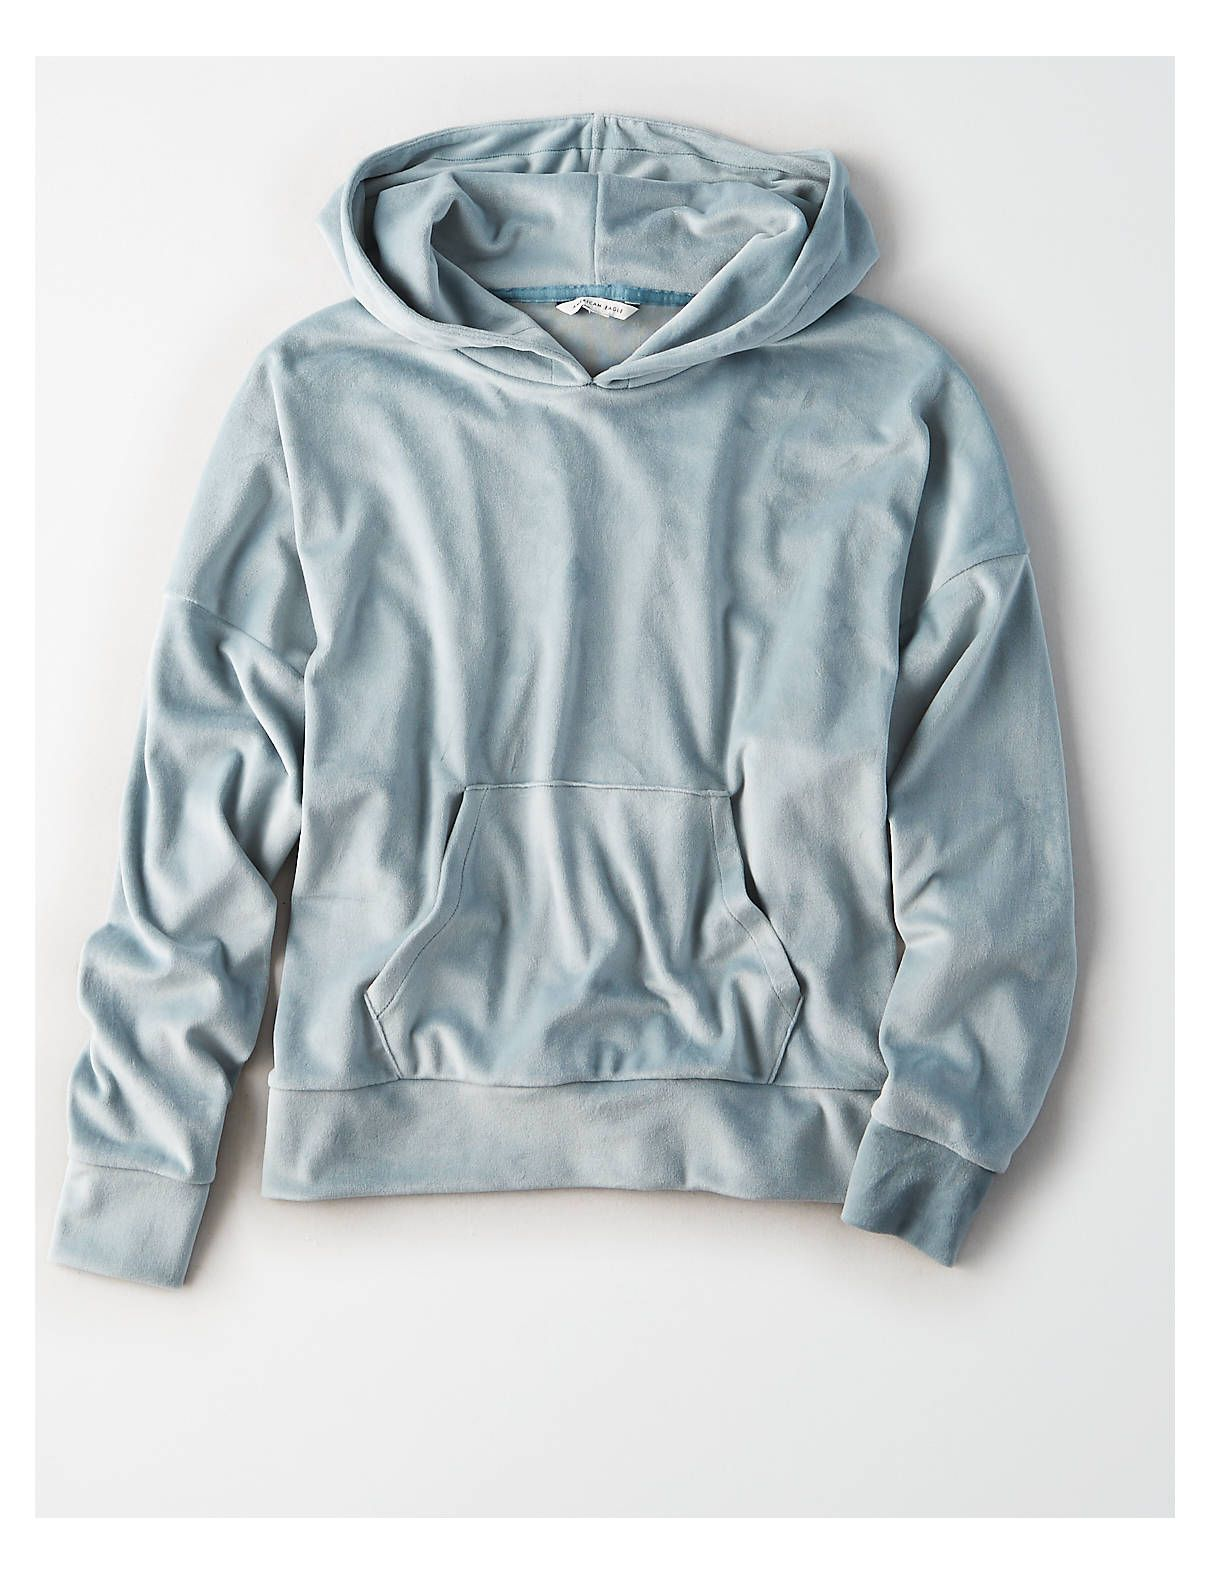 Ae Cozy Ever After Hoodie Gray American Eagle Outfitters Vintage Hoodies Hoodies Mens Outfitters [ 1575 x 1211 Pixel ]